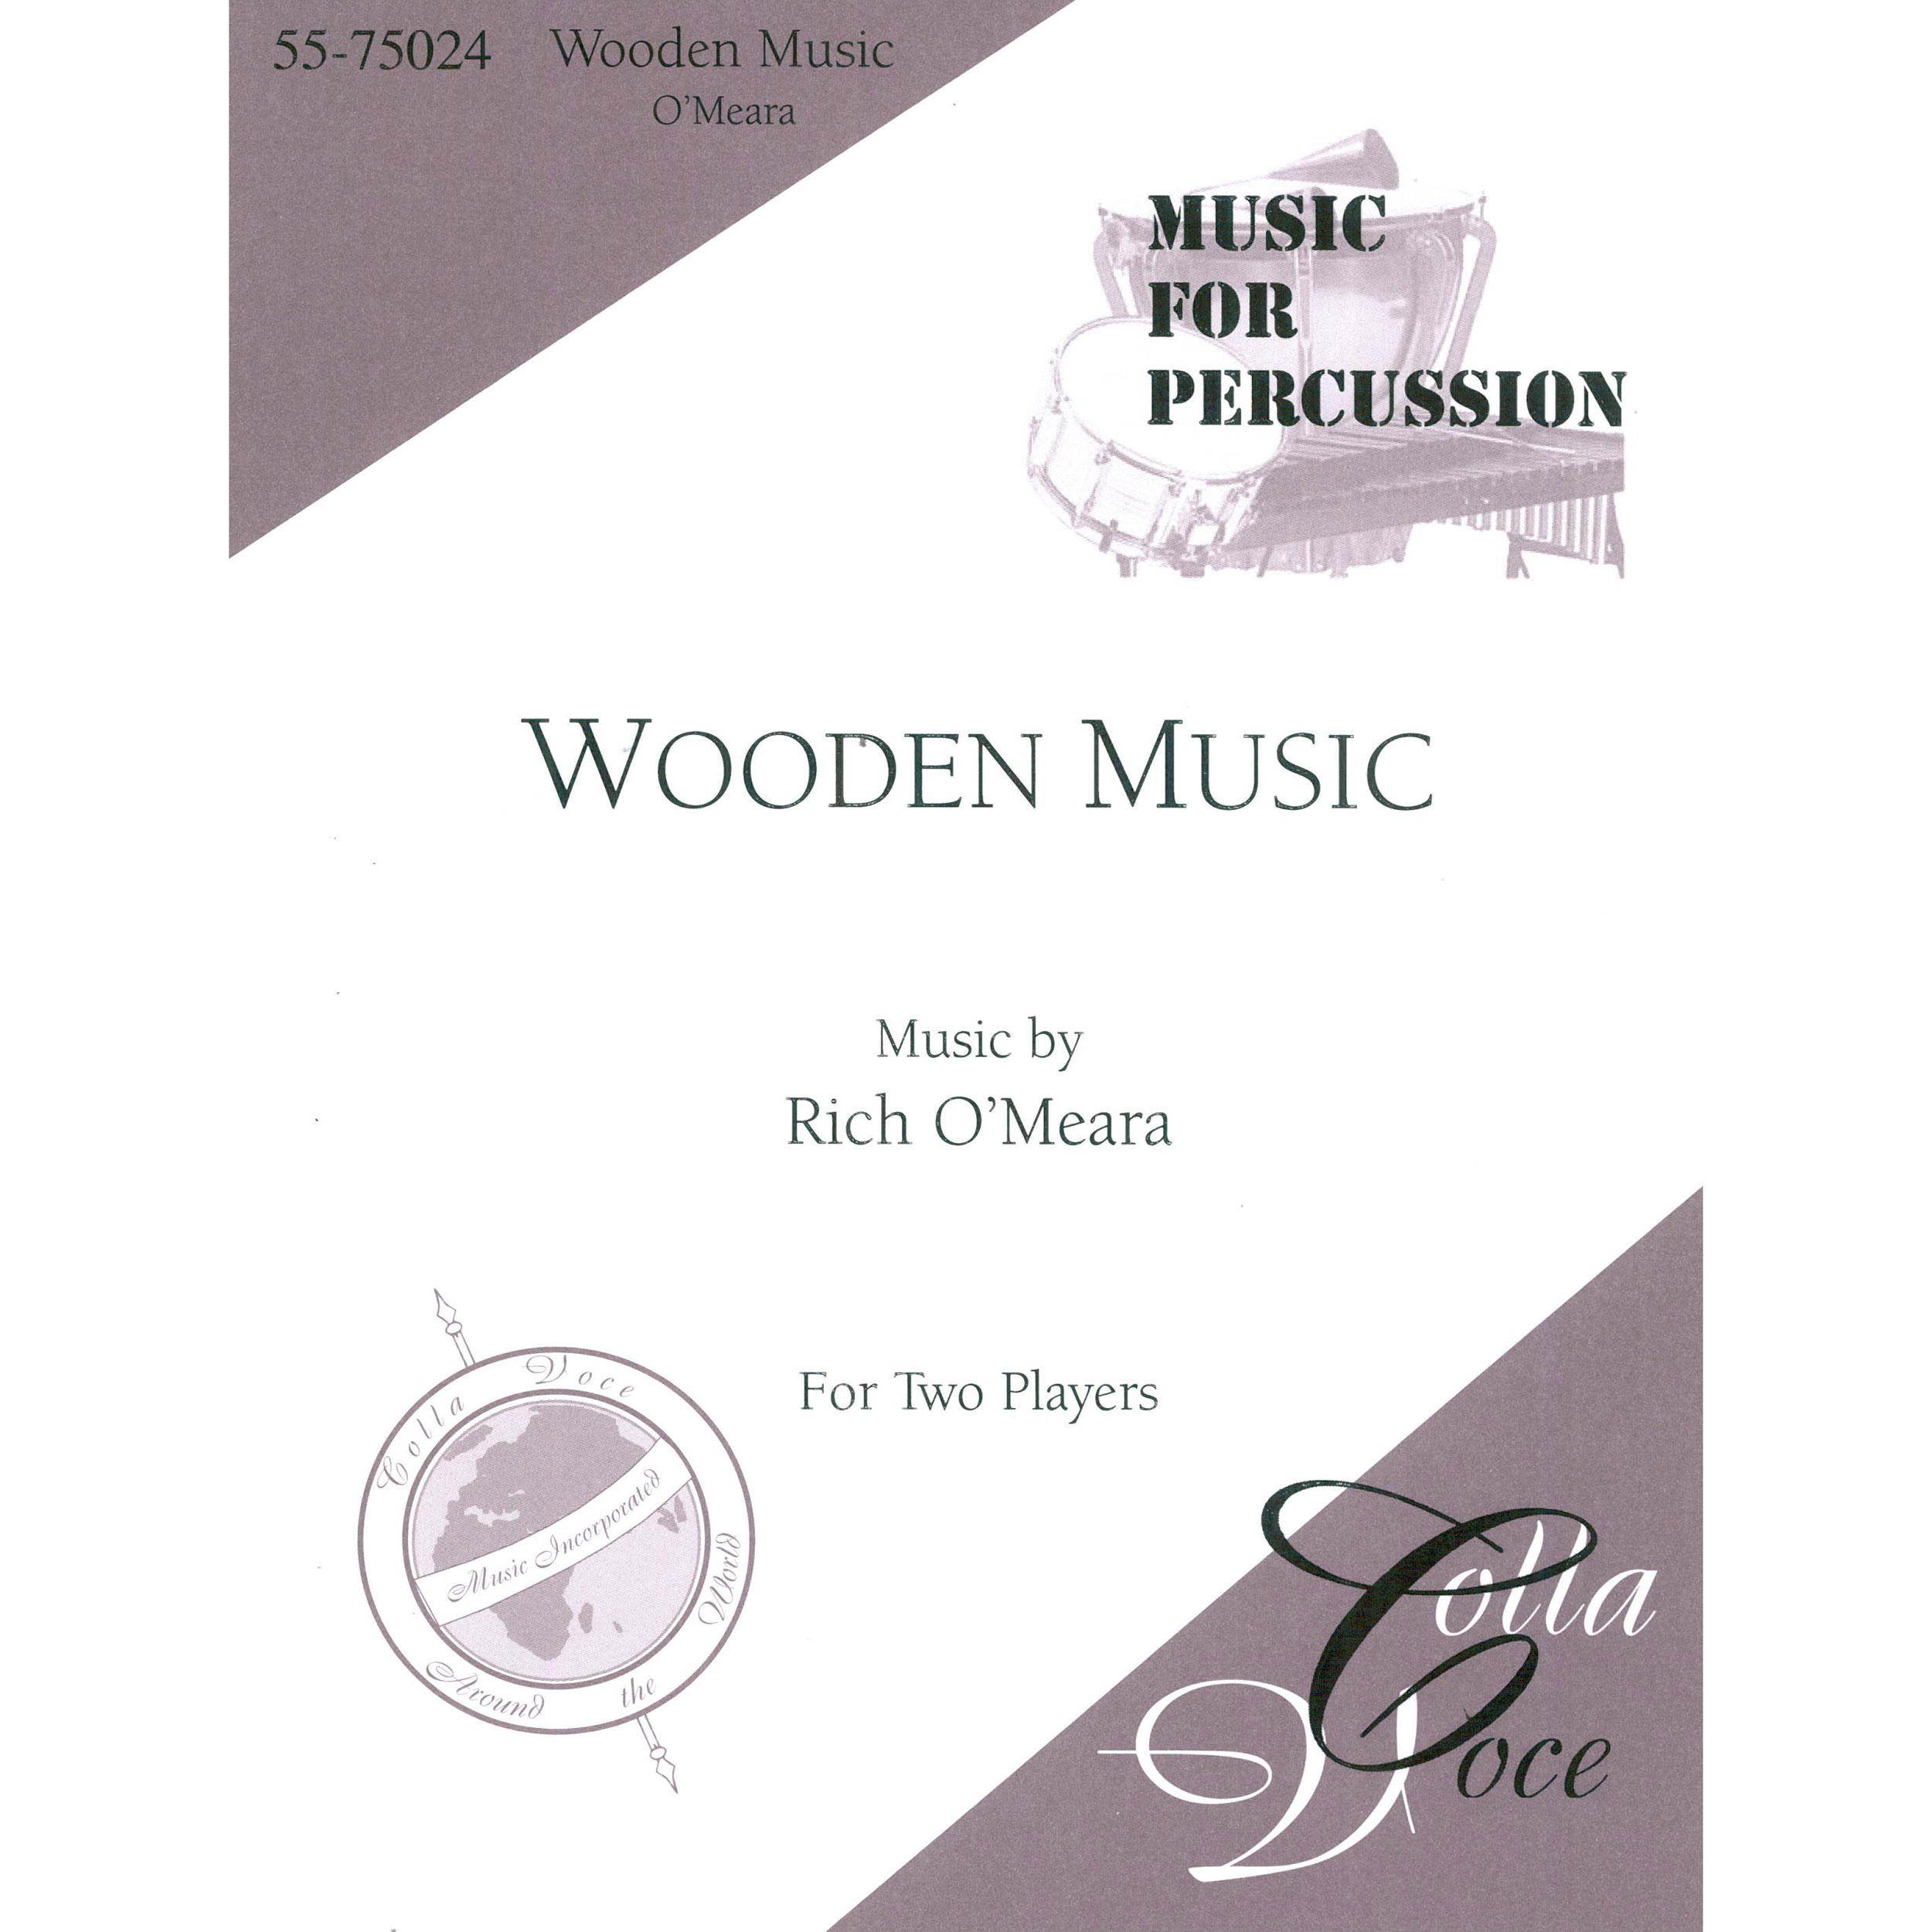 Wooden Music by Rich O